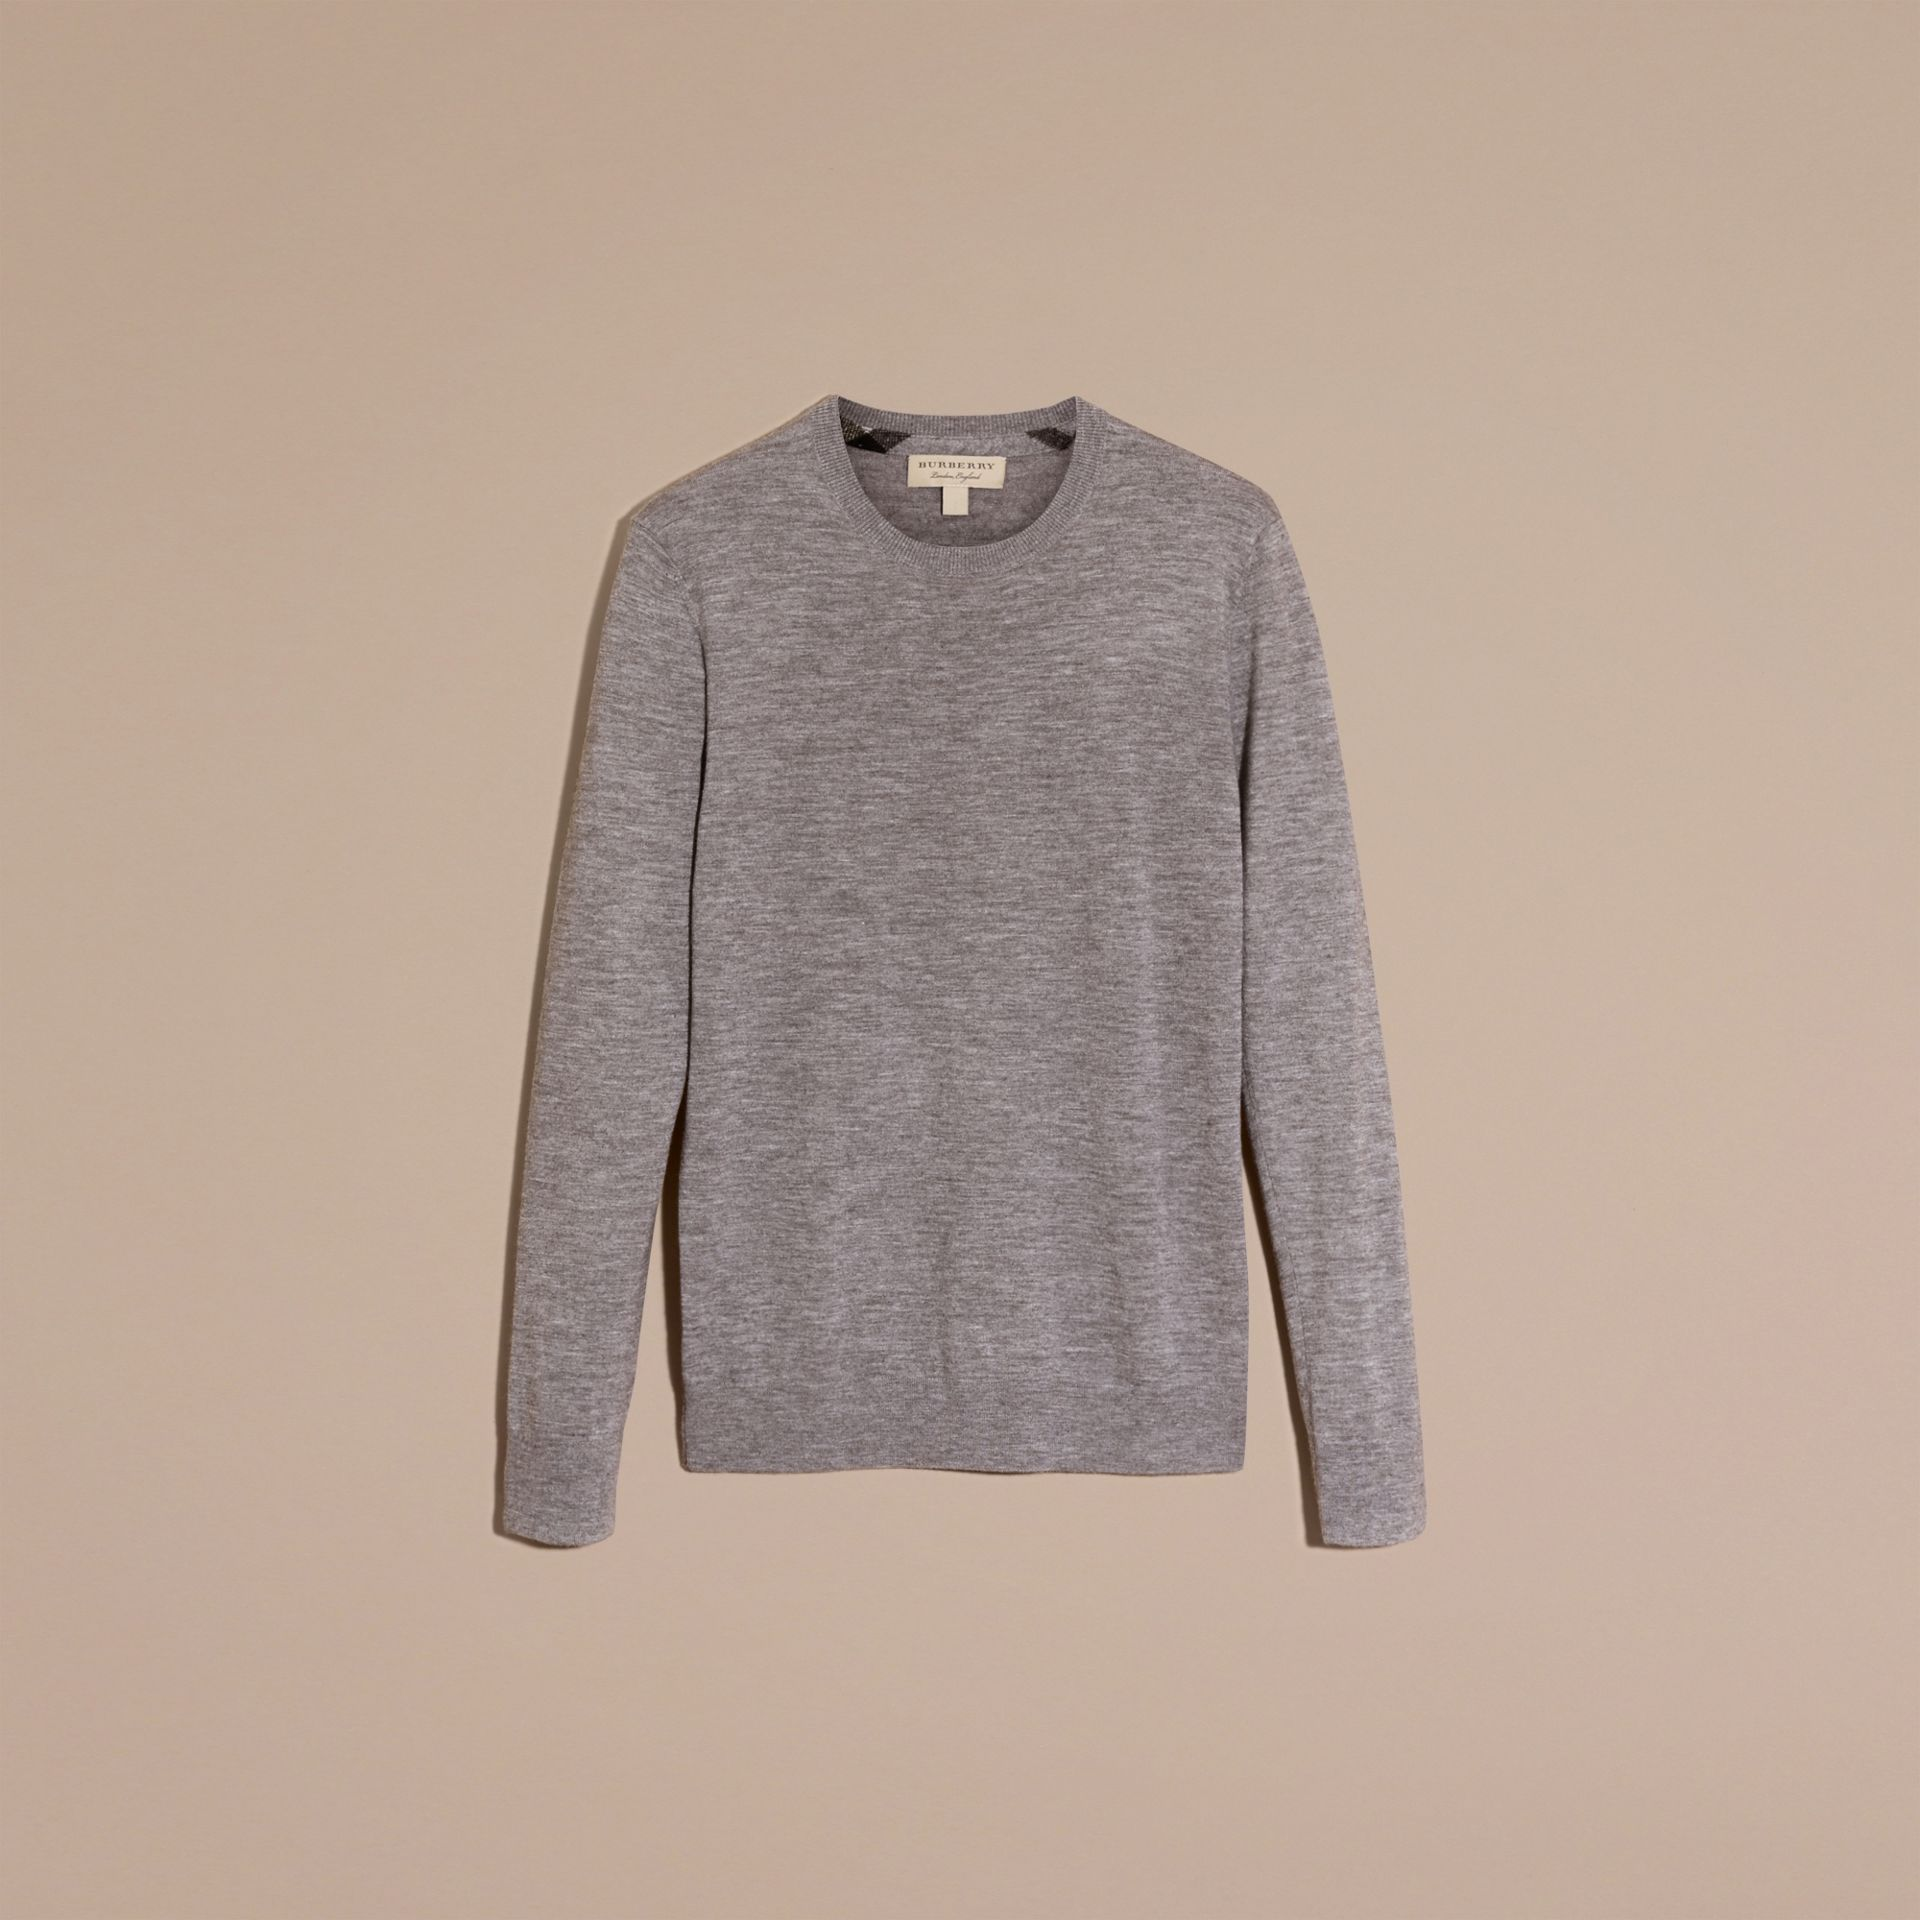 Pale grey melange Lightweight Crew Neck Cashmere Sweater with Check Trim Pale Grey Melange - gallery image 4